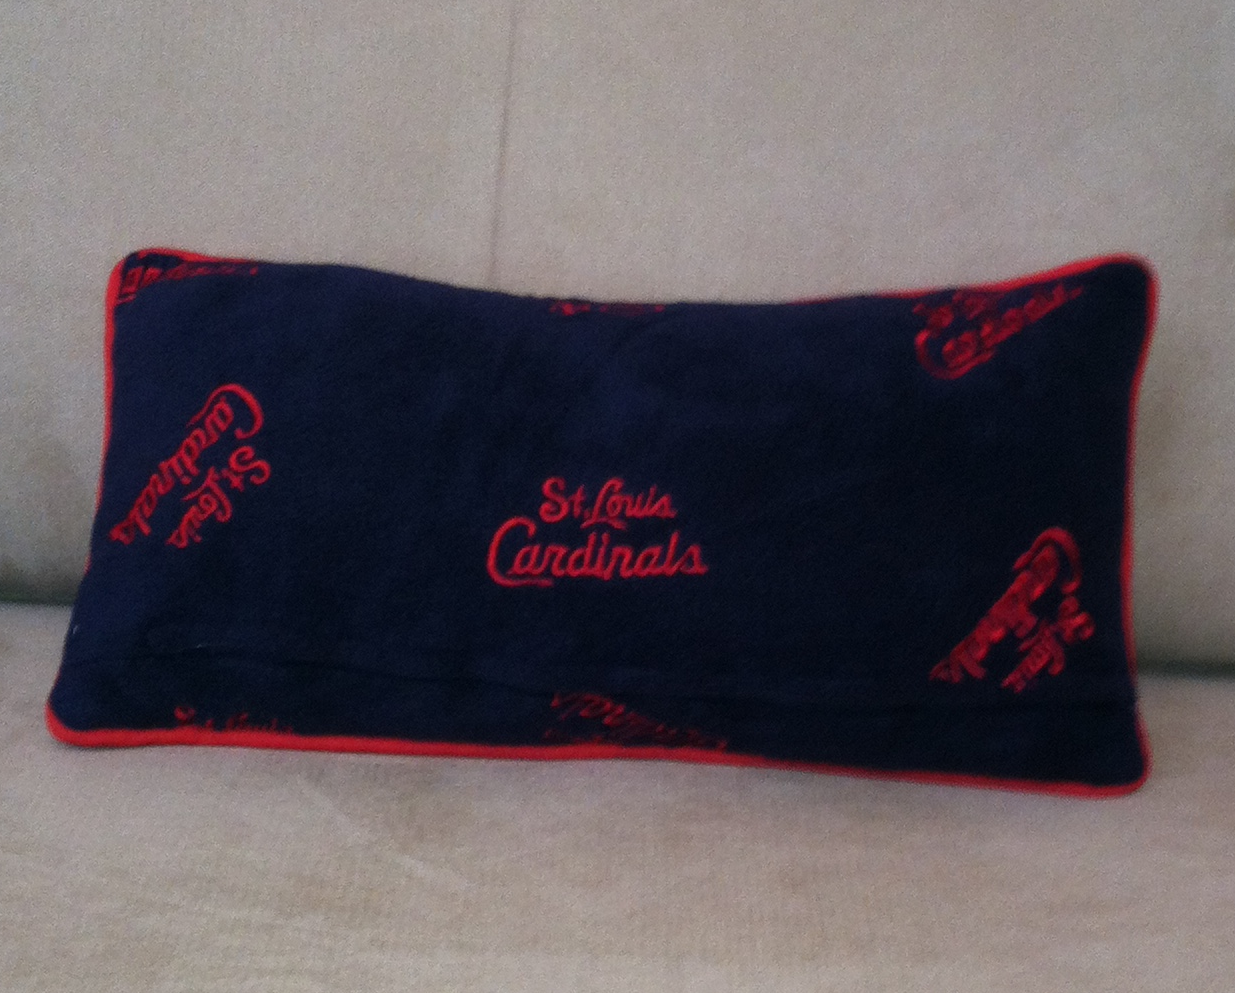 The Back of the Cardinals Rally Pillow